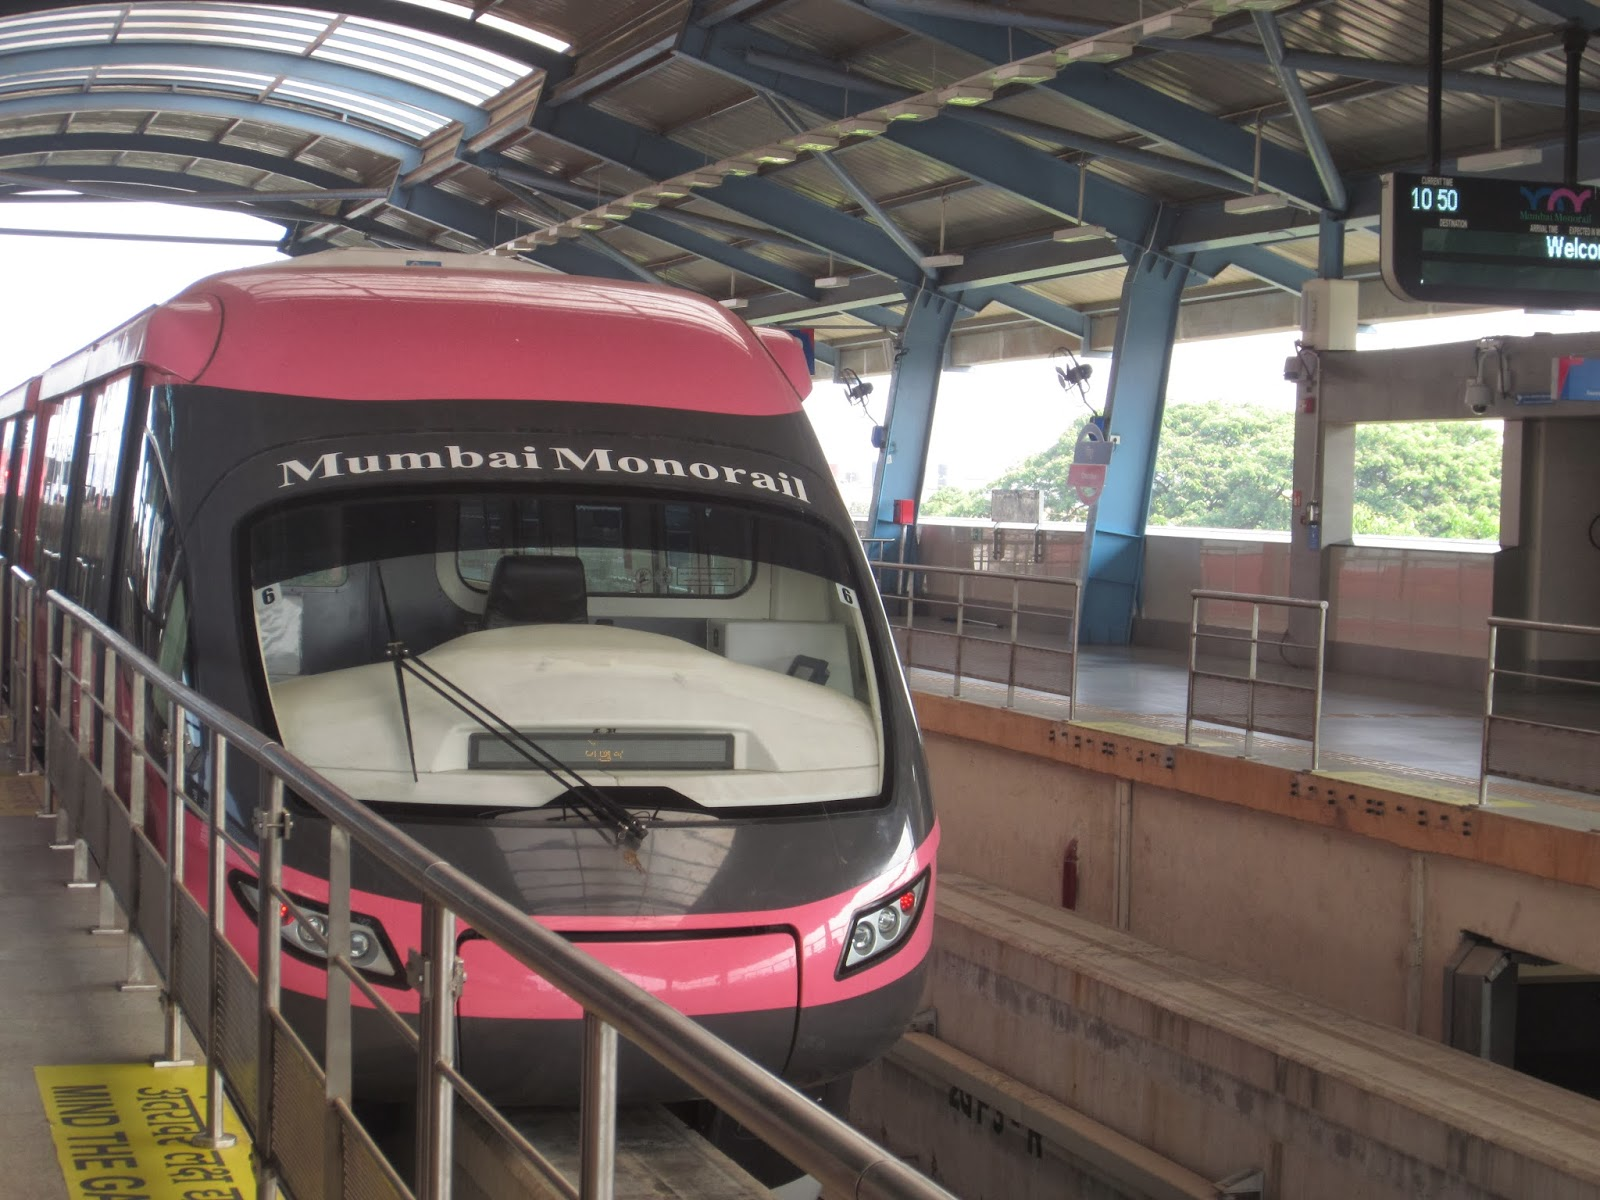 Taking Off in the Mumbai Monorail